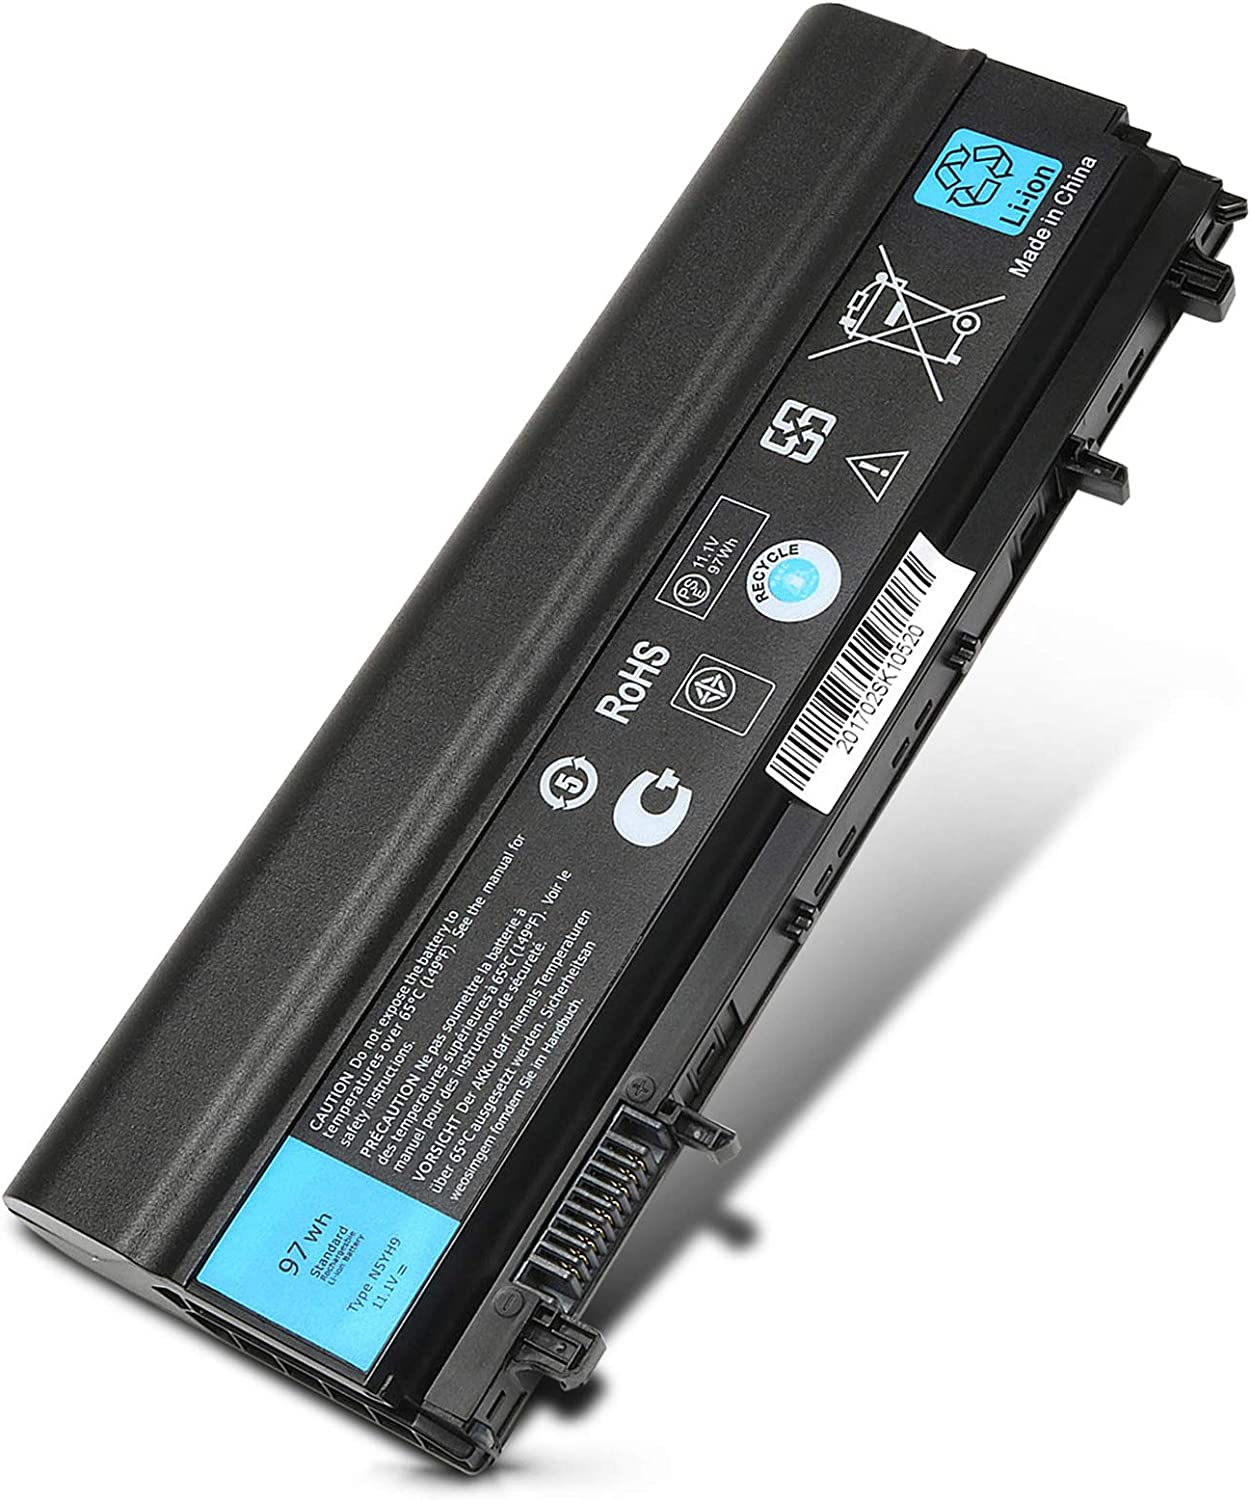 97WH Laptop Battery fit Dell Latitude 14 E5440 E5540 N5YH9 VVONF 0K8HC 1N9C0 VJXMC 7W6K0 F49WX 0M7T5F NVWGM CXF66 WGCW6 312-1351 Laptop Battery-9 Cell 11.1V